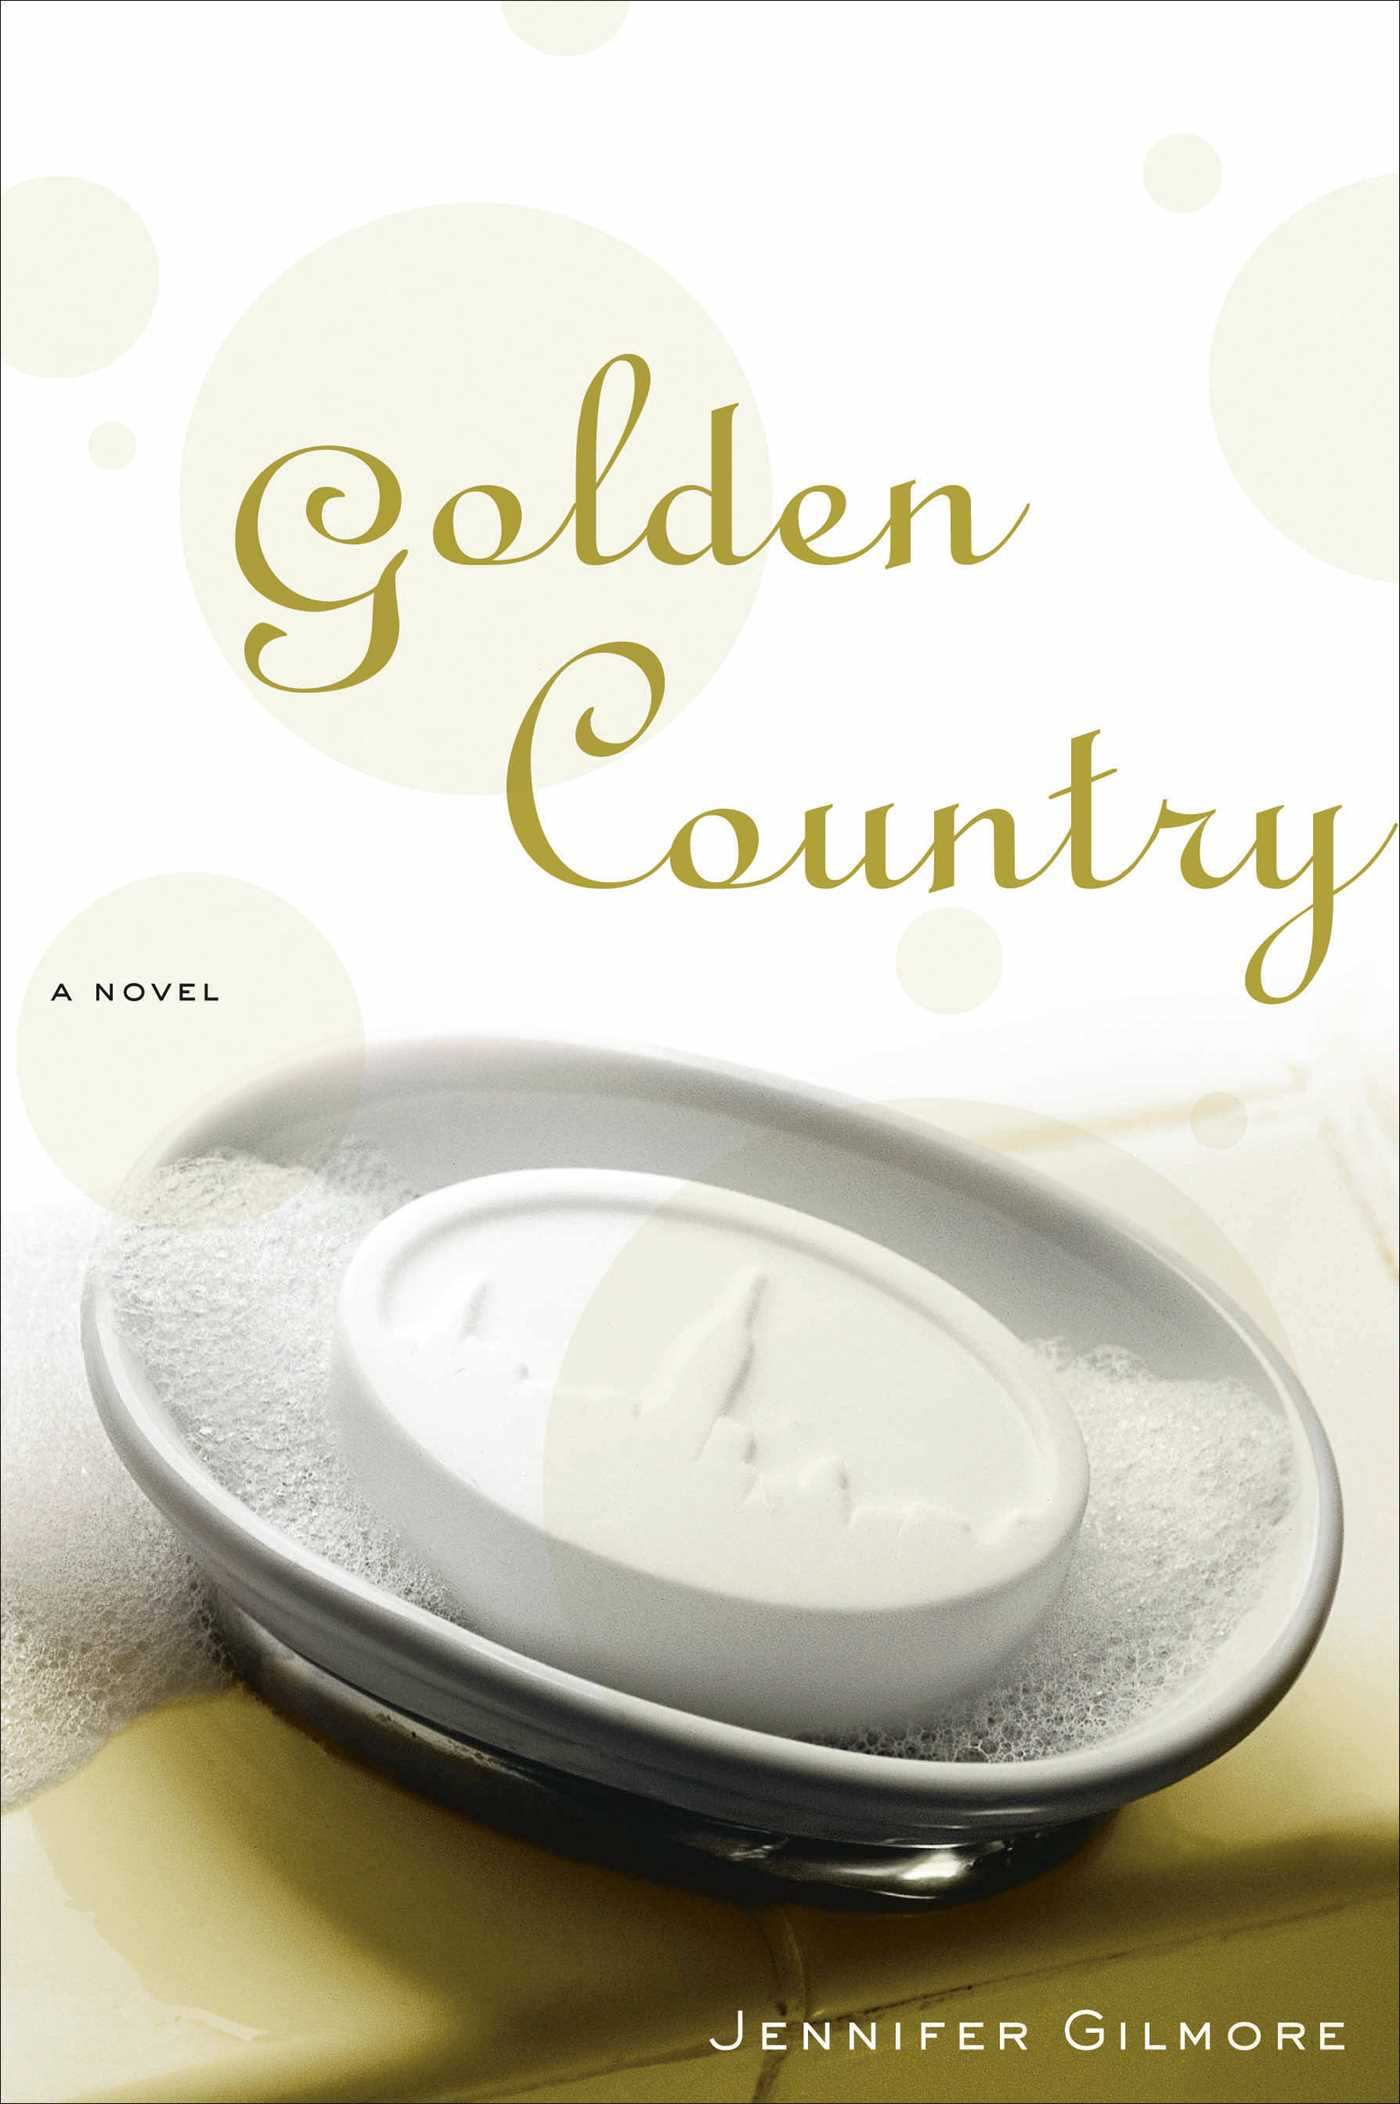 Golden-country-9781416540984_hr